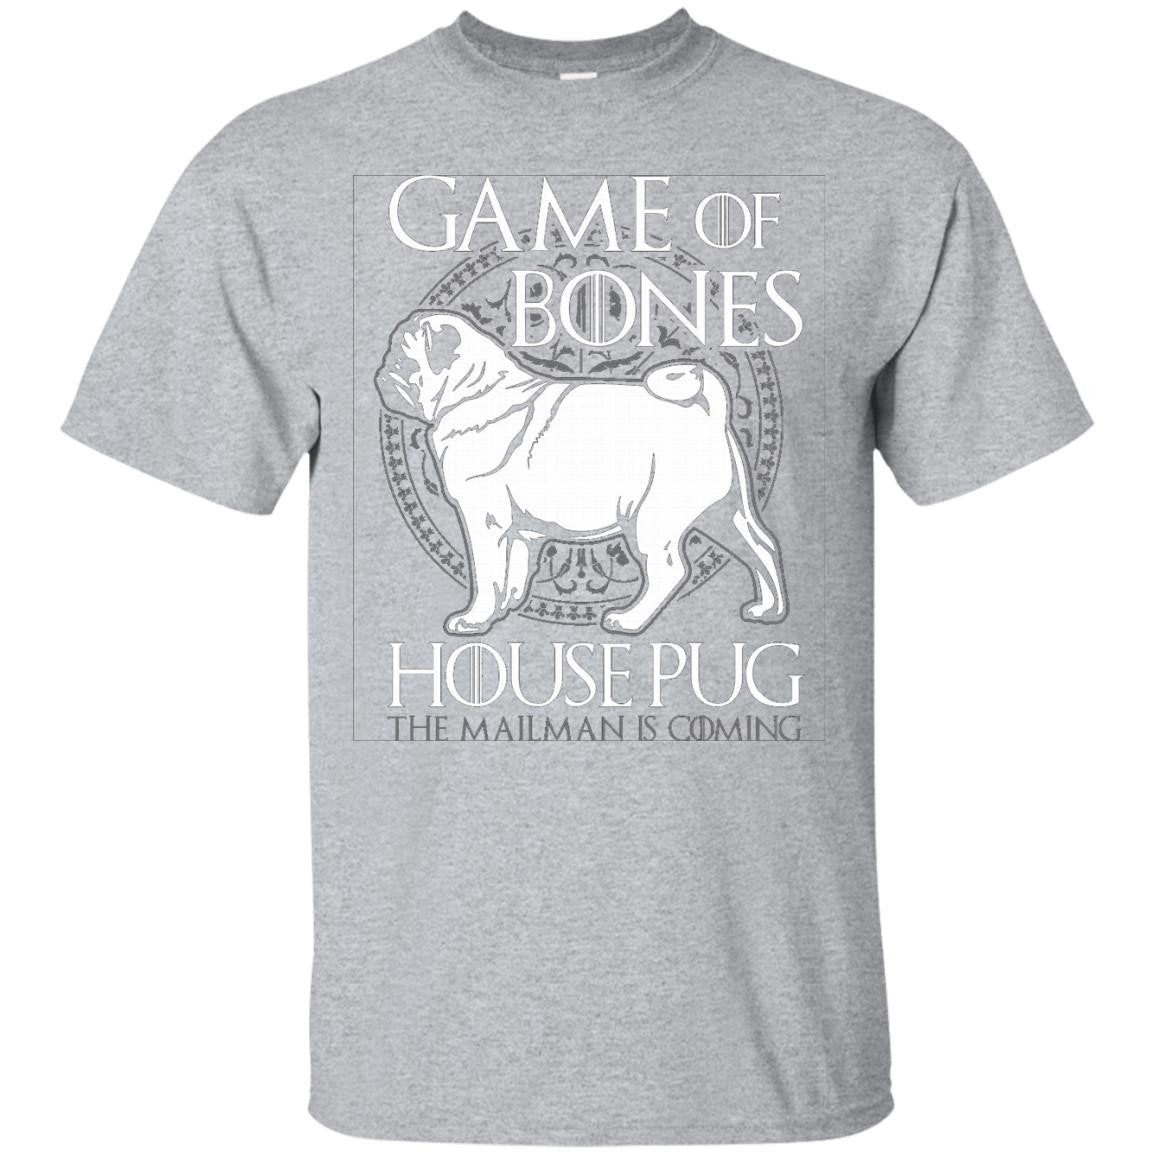 Game of Bones - House of Pug - The Mailman is Coming - T-Shirt